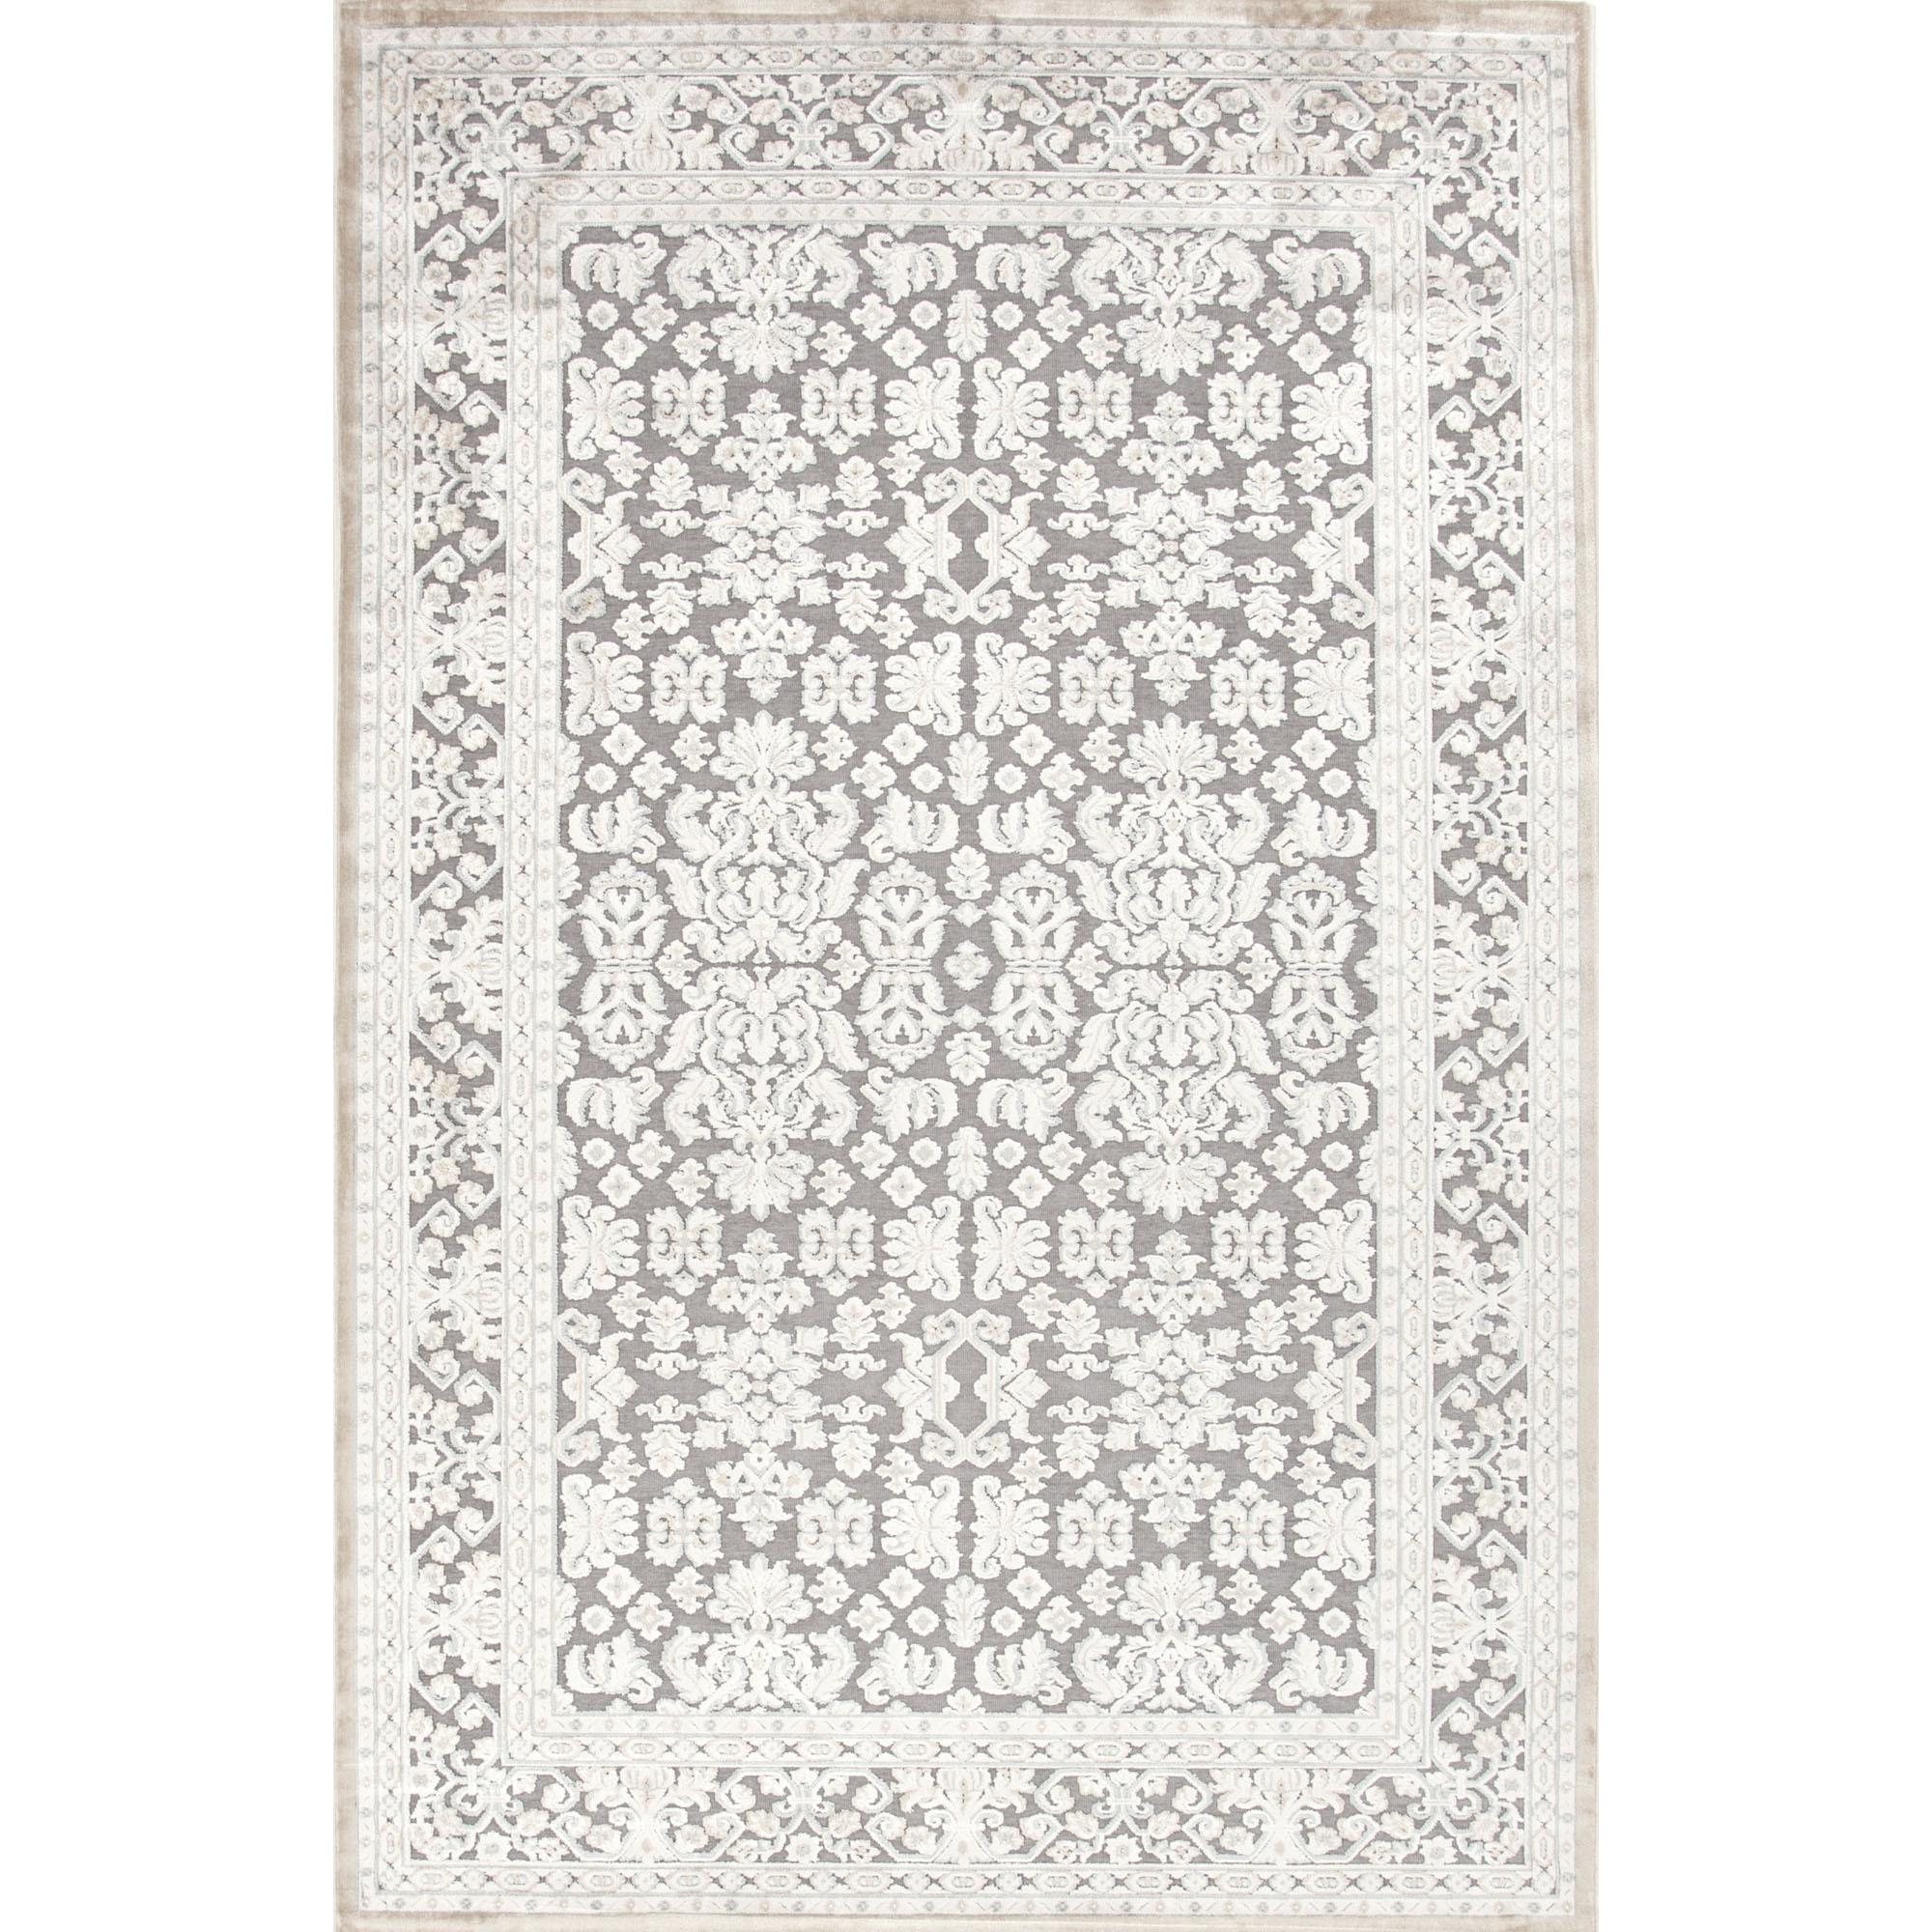 Fables 2 x 3 Rug by JAIPUR Living at Malouf Furniture Co.